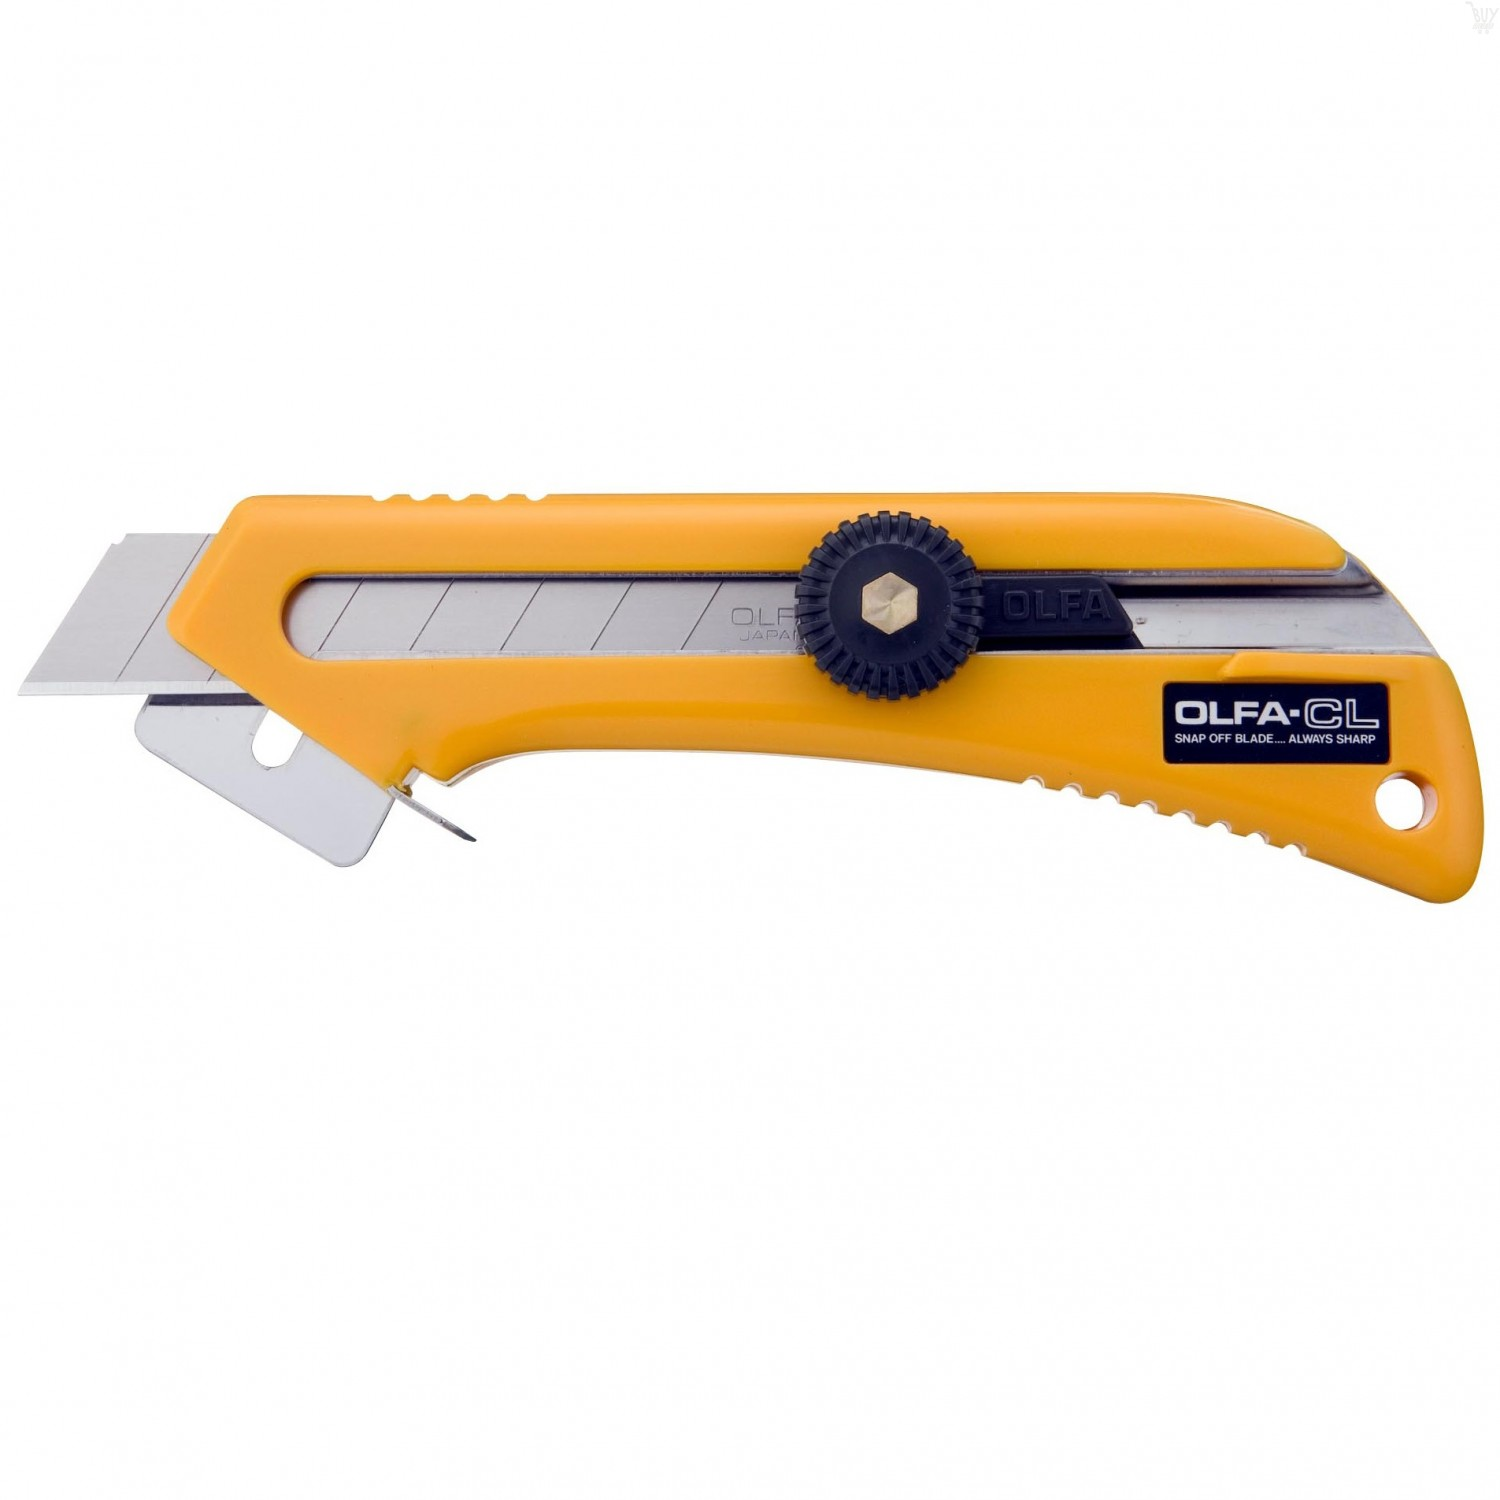 OLFA 18mm CL Carton & Packaging Materials Utility Knife with Depth Gauge